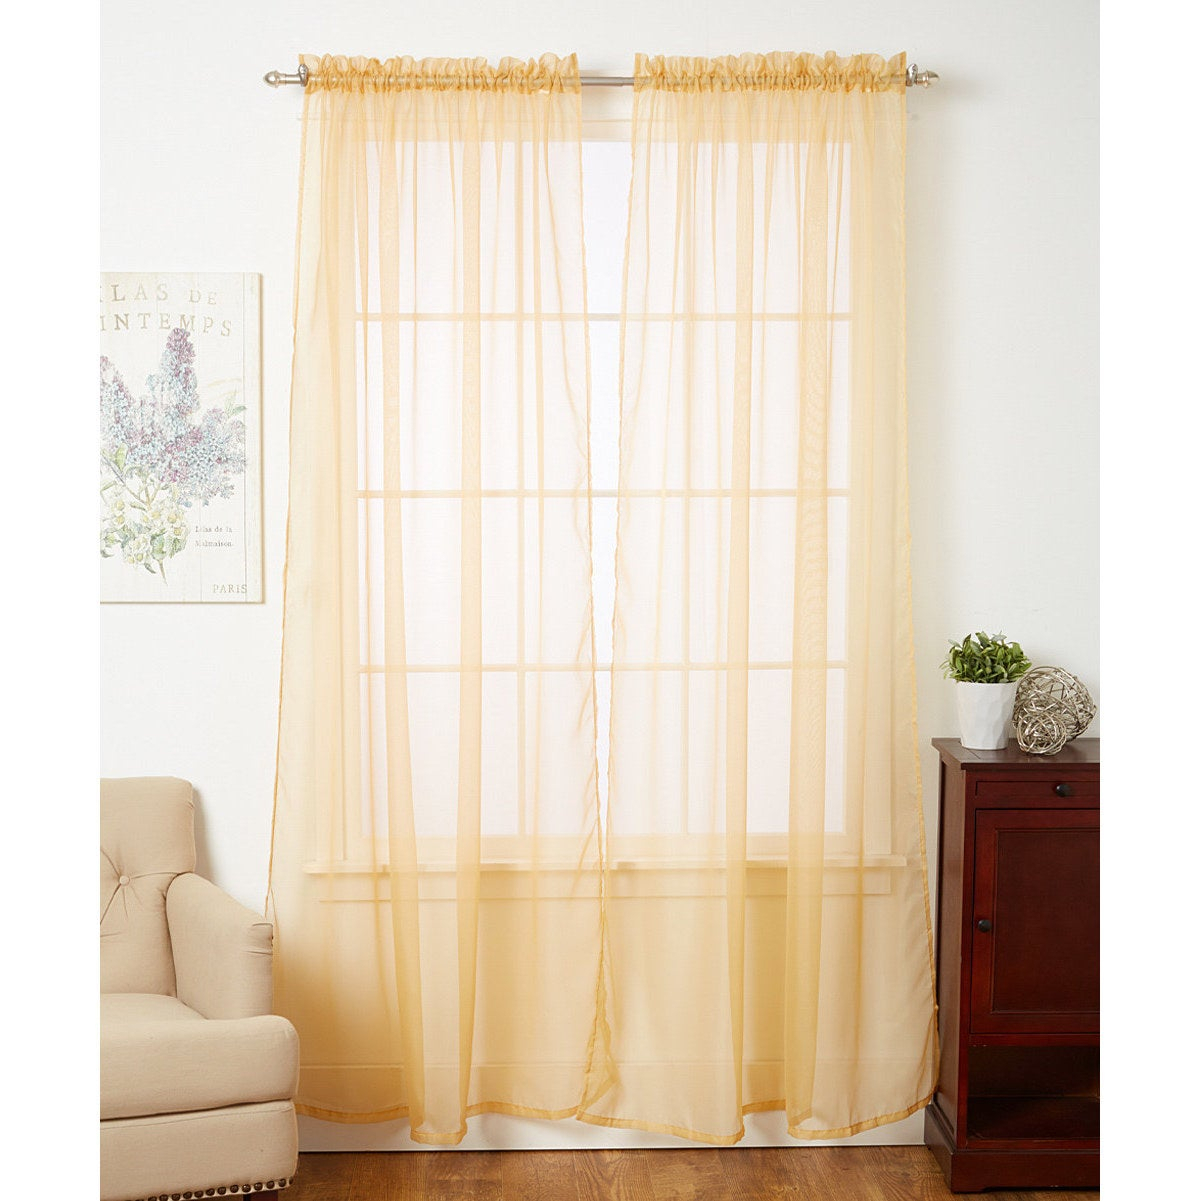 Linda Sheer Voile 4 Pack Window Curtain Panel Pairs – 55 X 84 Pertaining To Pairs To Go Victoria Voile Curtain Panel Pairs (View 11 of 20)